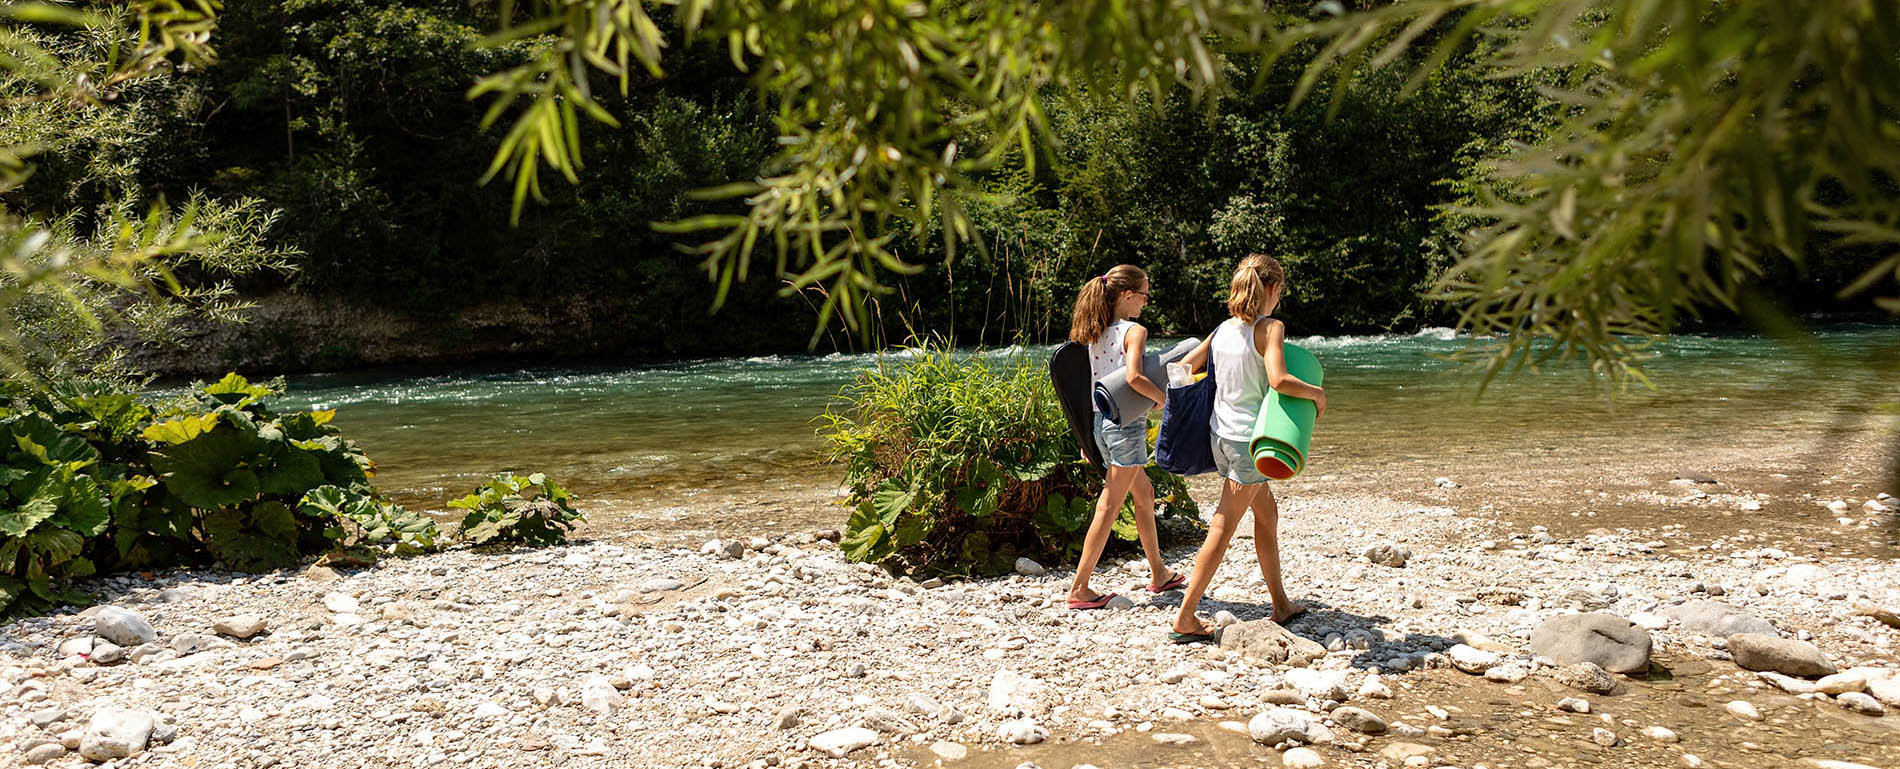 RIVER CAMPING BLED